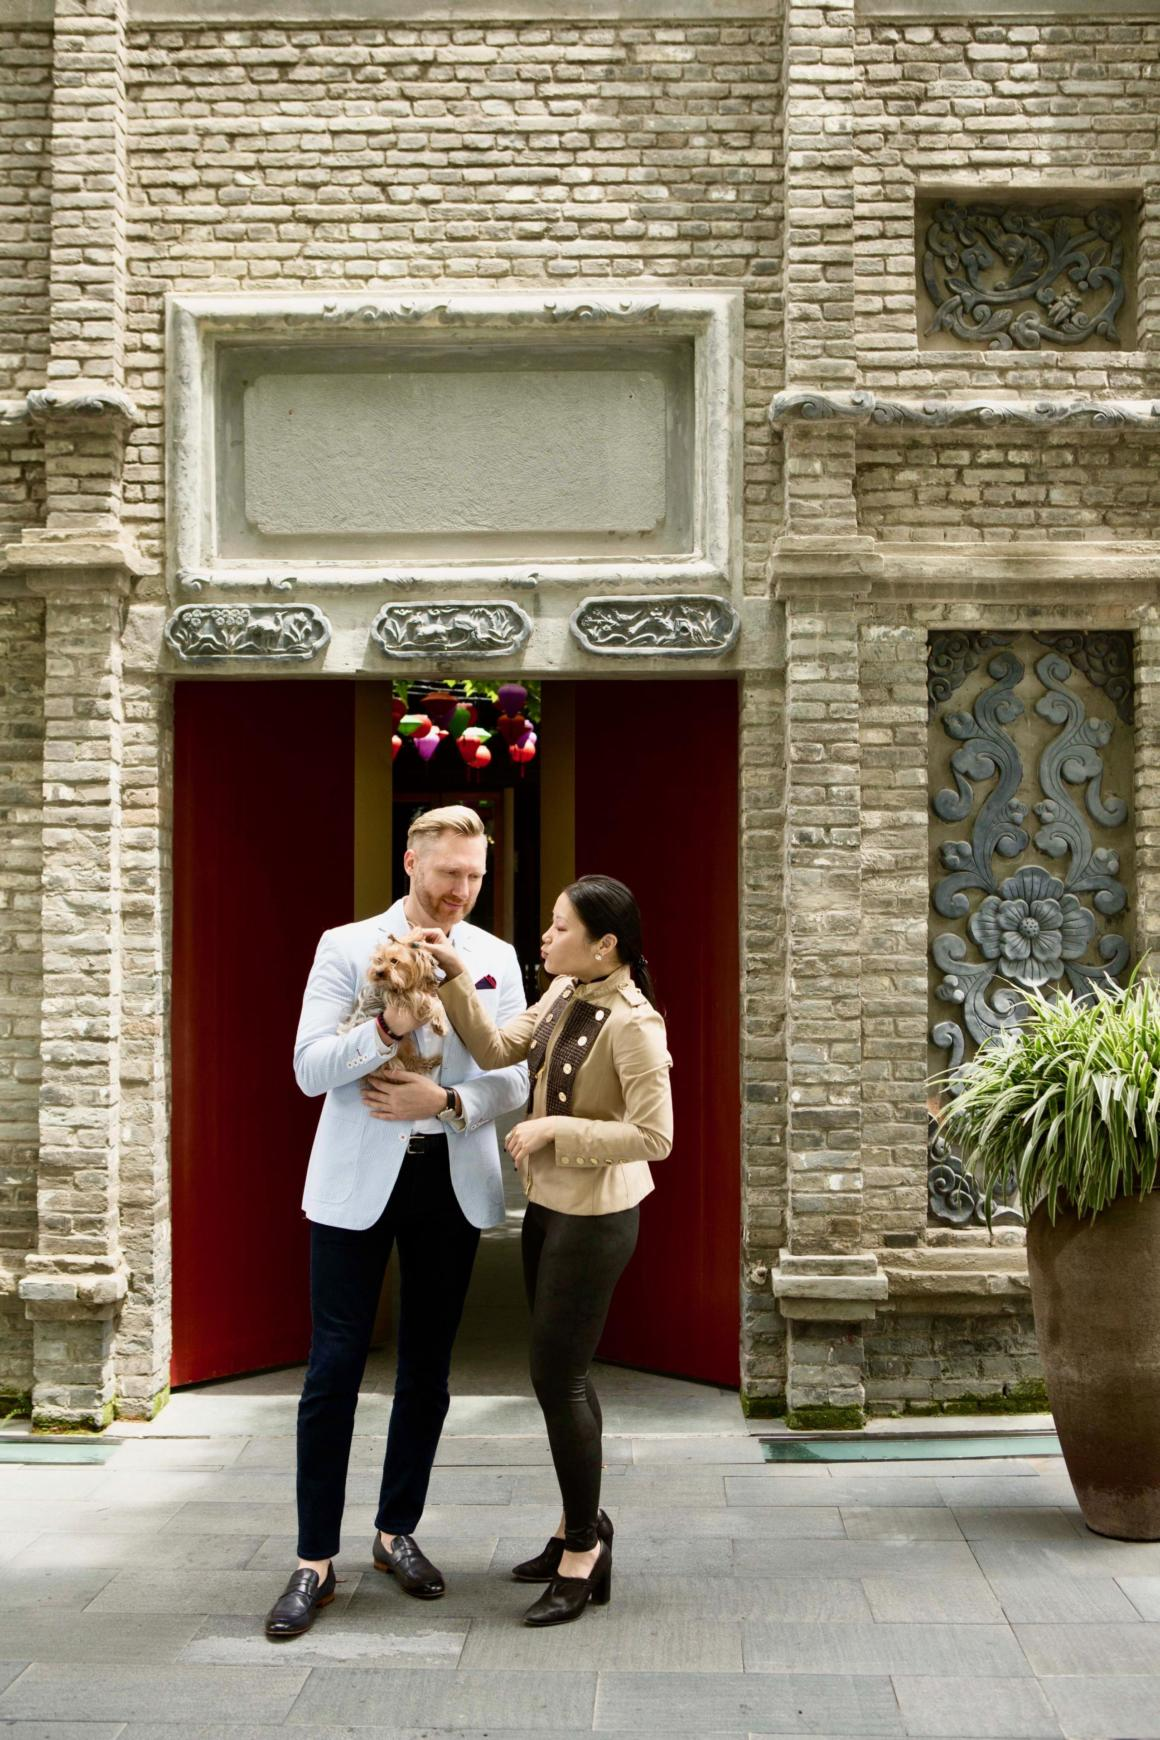 Kurt Macher & Grace Chuang, General Manager & Director of Communications, The Temple House